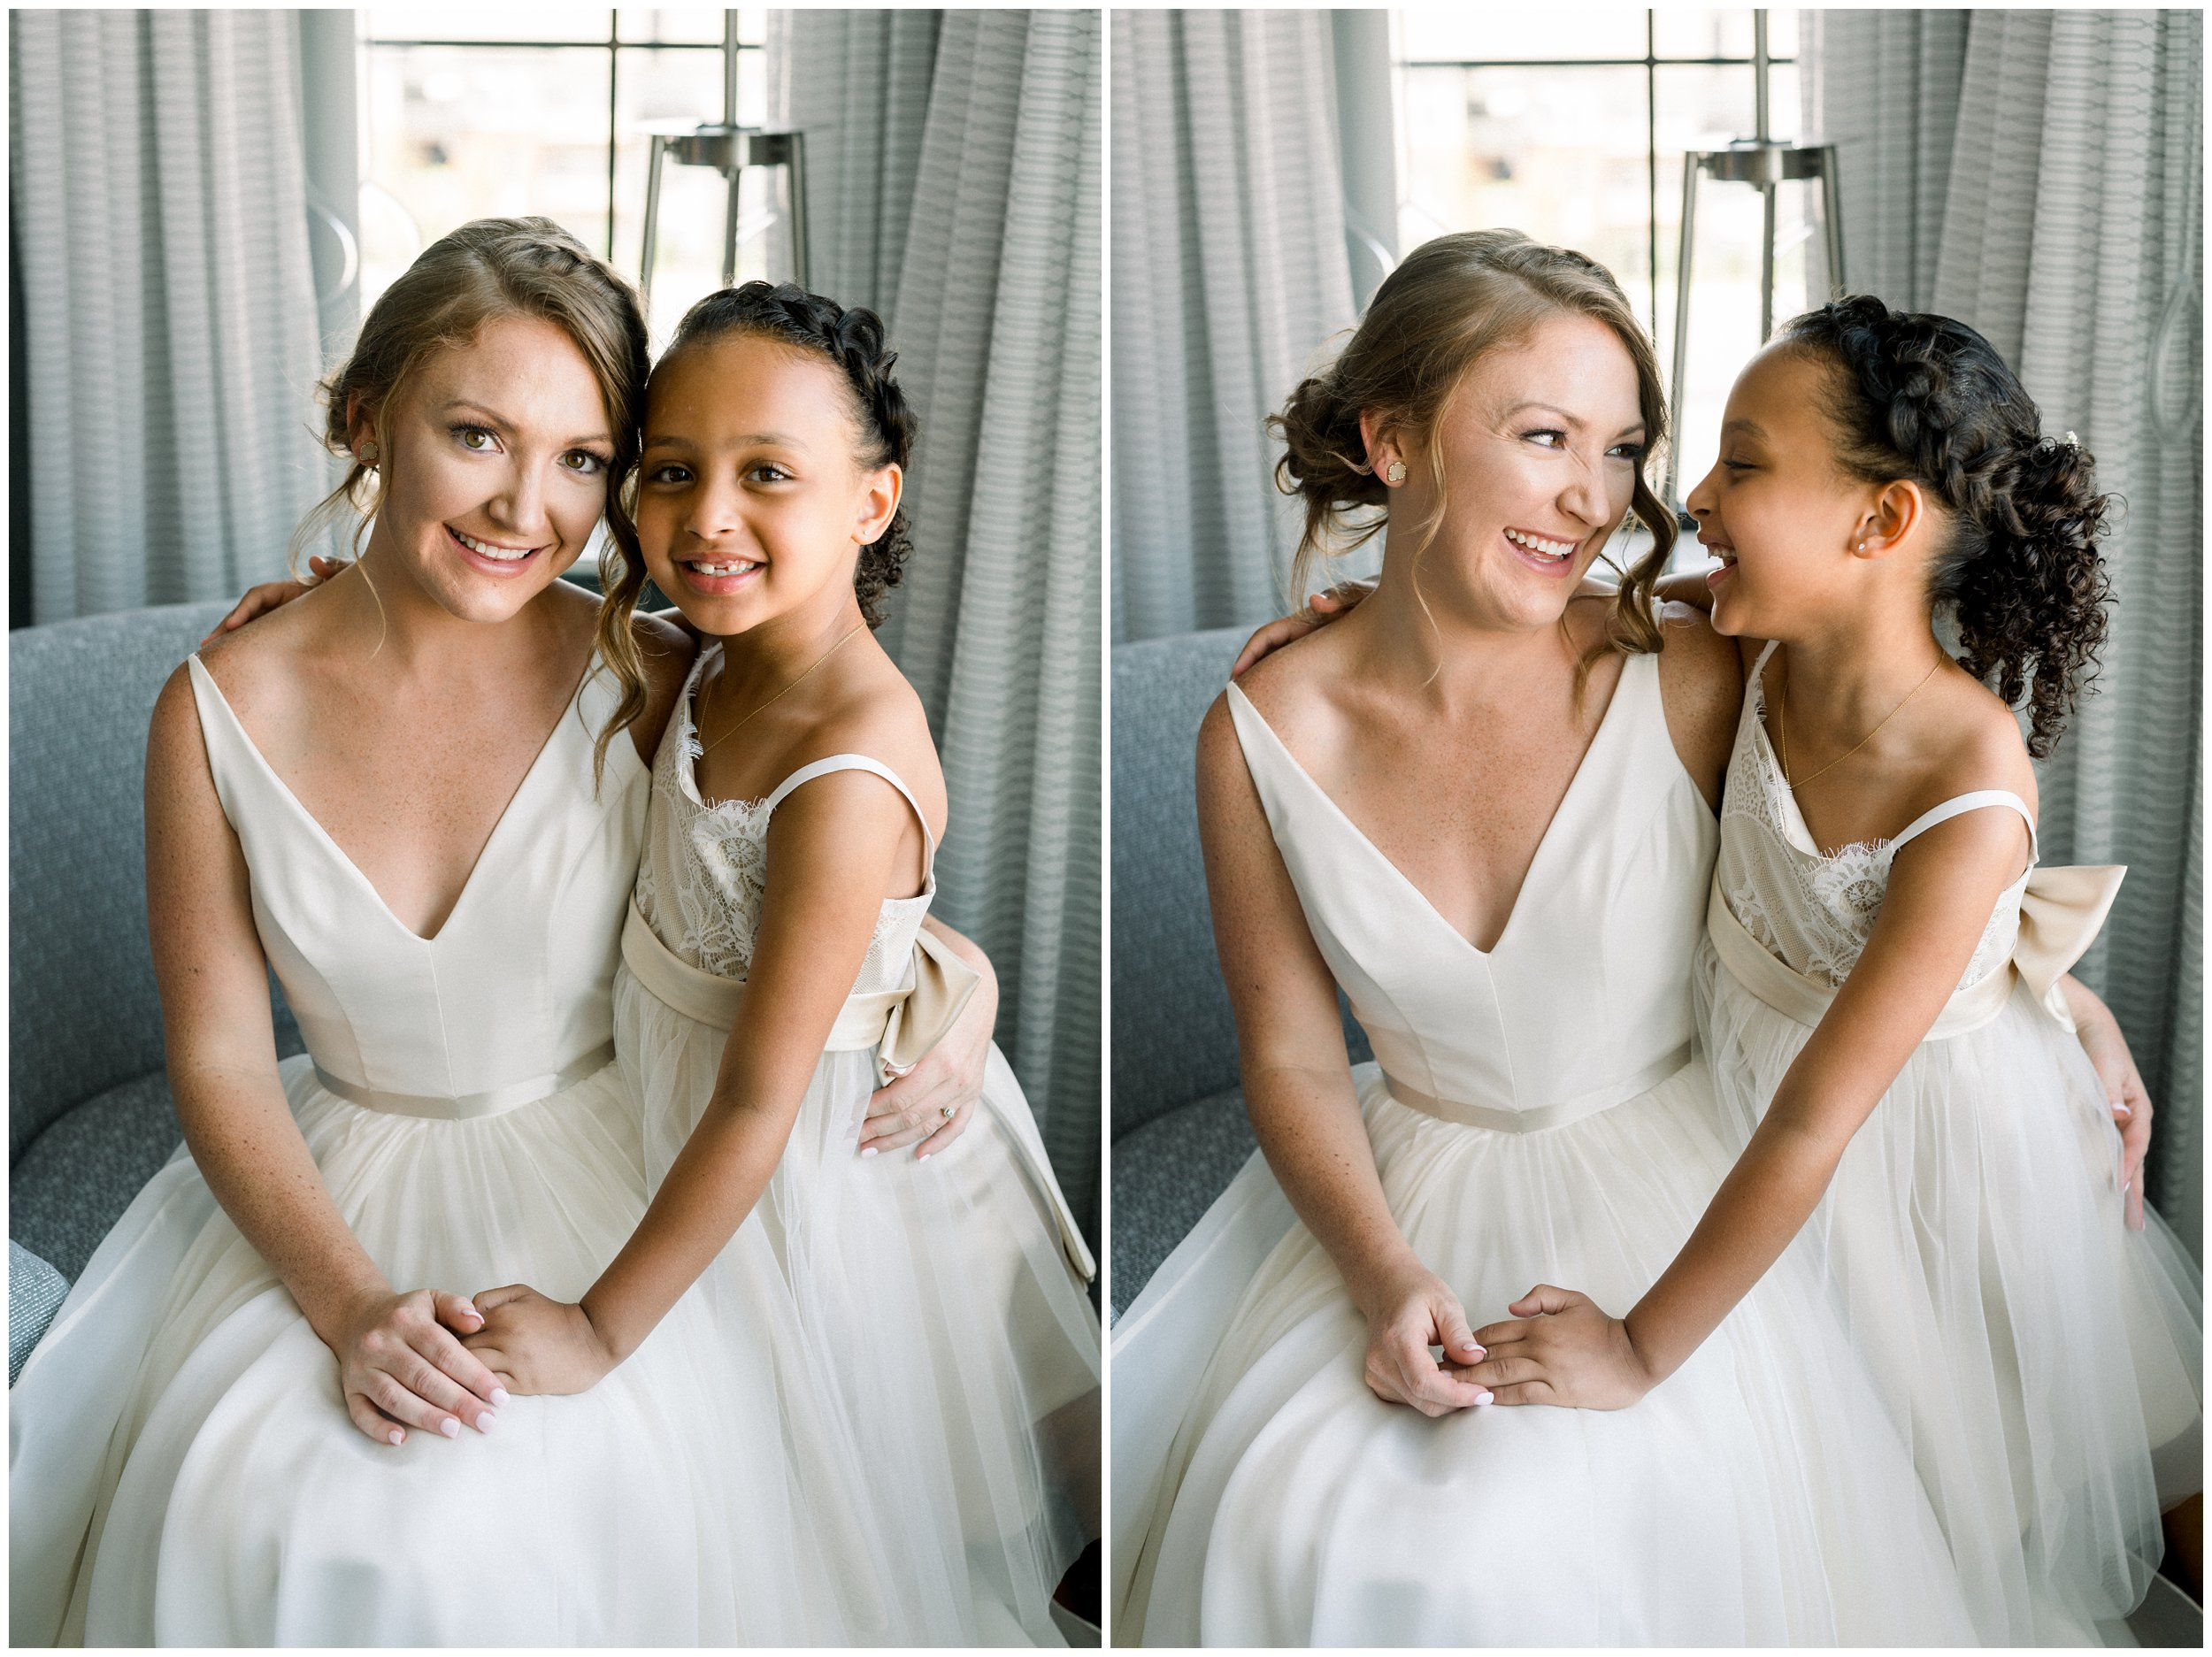 Bride with daughter on wedding day